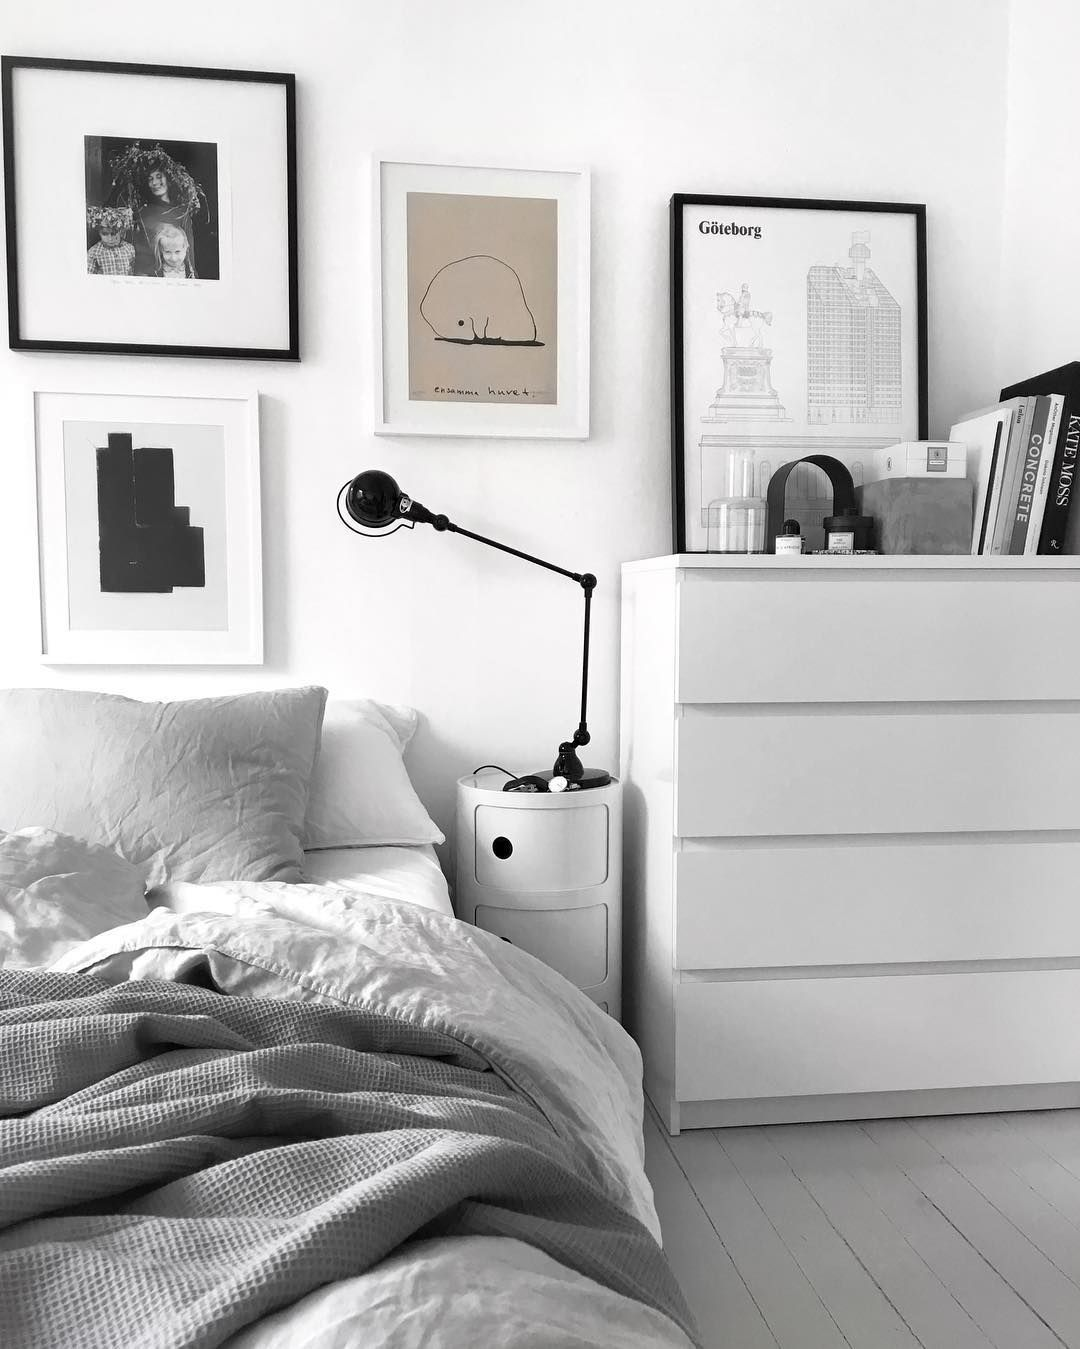 ikea malm kommode home pinterest schlafzimmer schlafzimmer ideen und bilder schlafzimmer. Black Bedroom Furniture Sets. Home Design Ideas